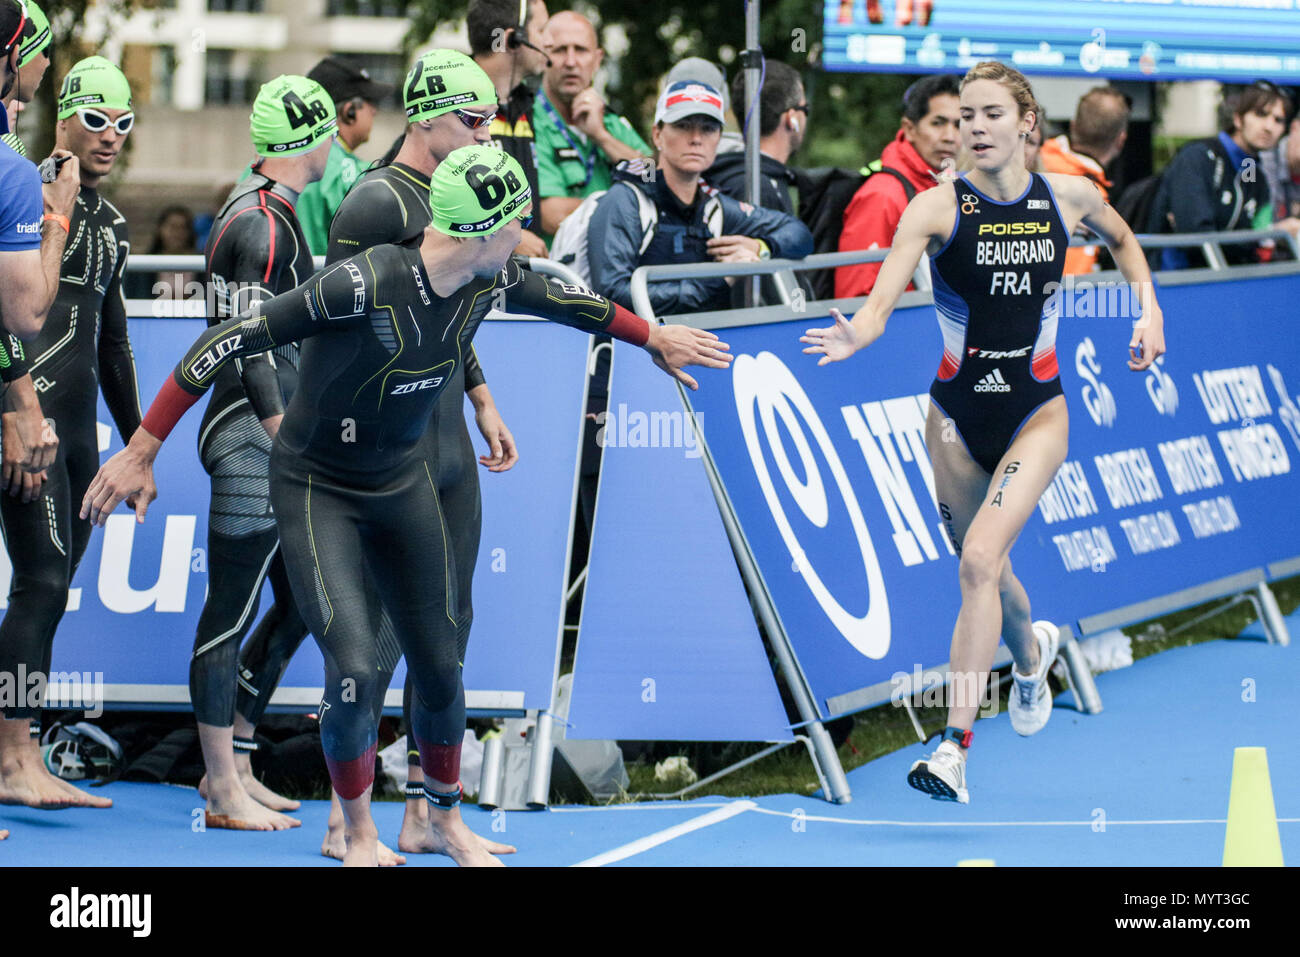 Nottingham, UK. 7th Jun, 2018. Team France tag the next competitor into the Relay   Credit: Dan Cooke Credit: Dan Cooke/Alamy Live News - Stock Image